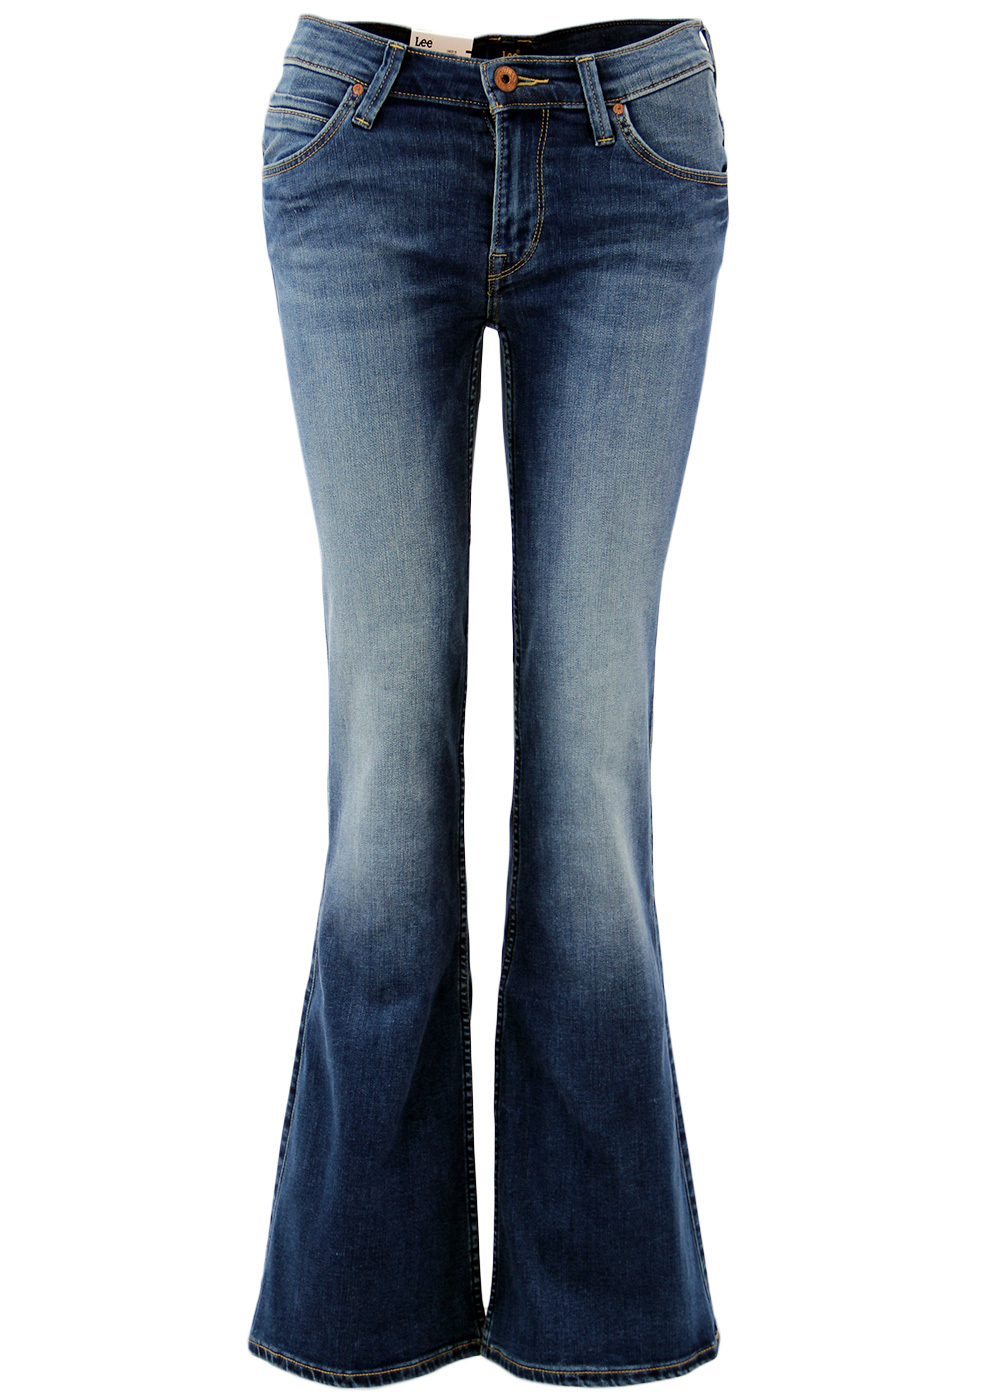 Annetta LEE Retro 1970s Flare Lagoon Denim Jeans